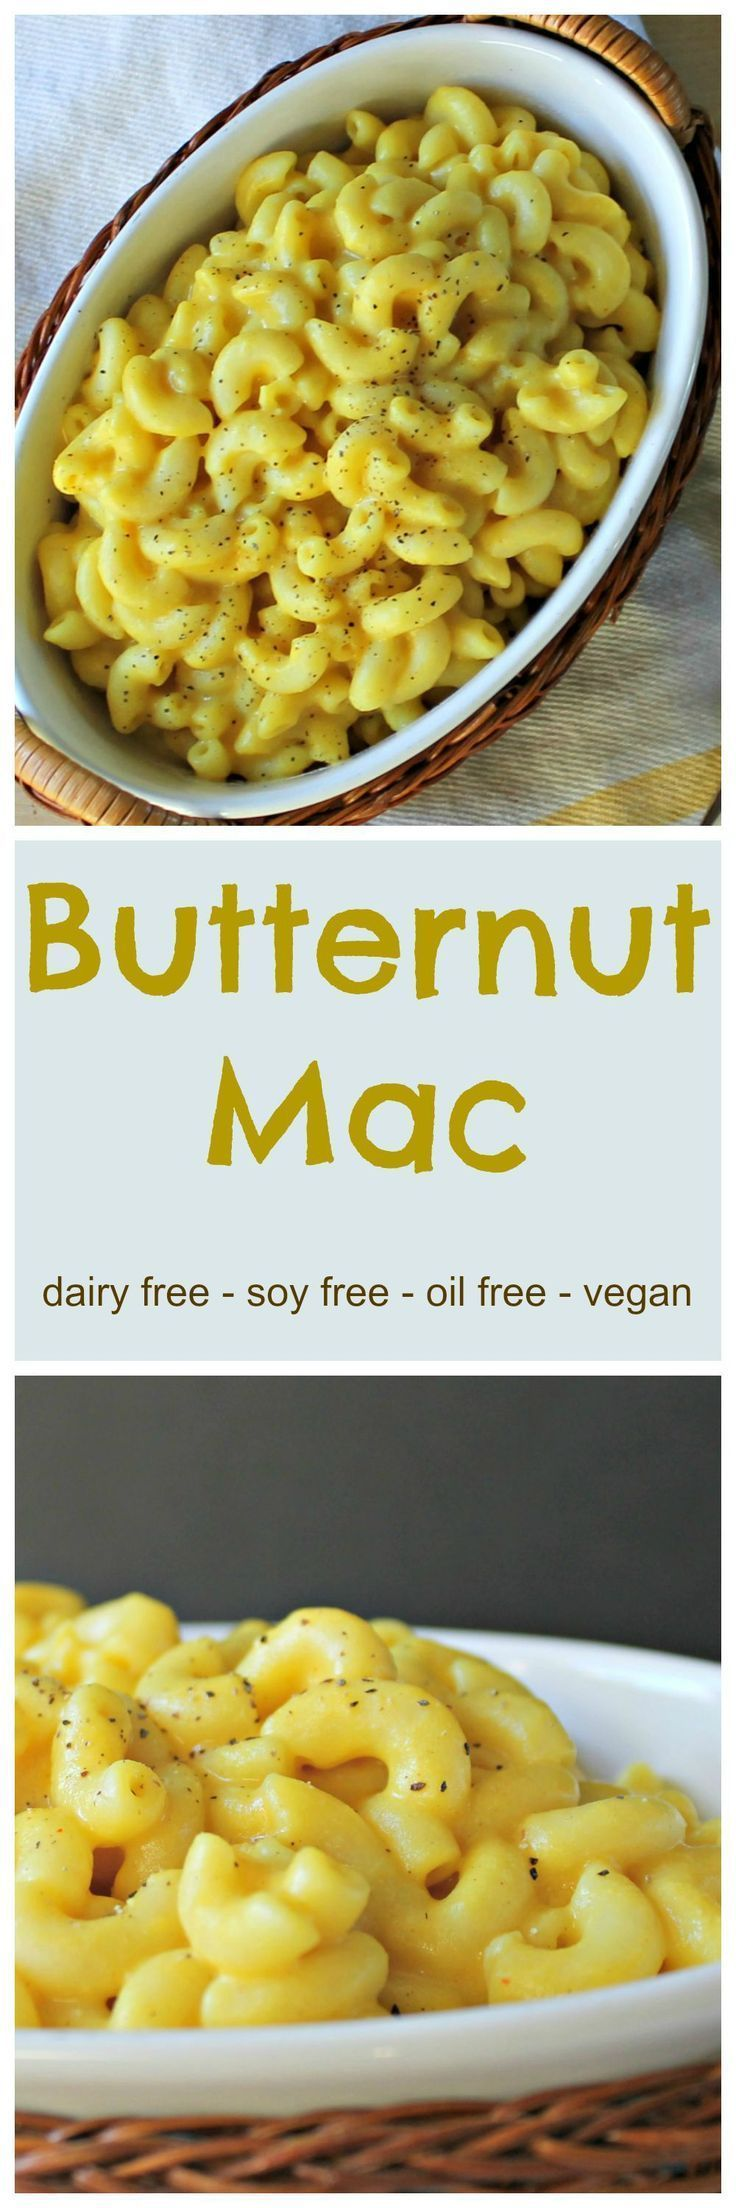 Butternut Mac - an AMAZING dairyfree mac and cheese that you won't believe is vegan !! So creamy and delicious and just look at that color! All from plant based whole foods! No soy, no nutritional yeast, no fake cheese - just good for you ingredients. My whole family LOVES this dish!